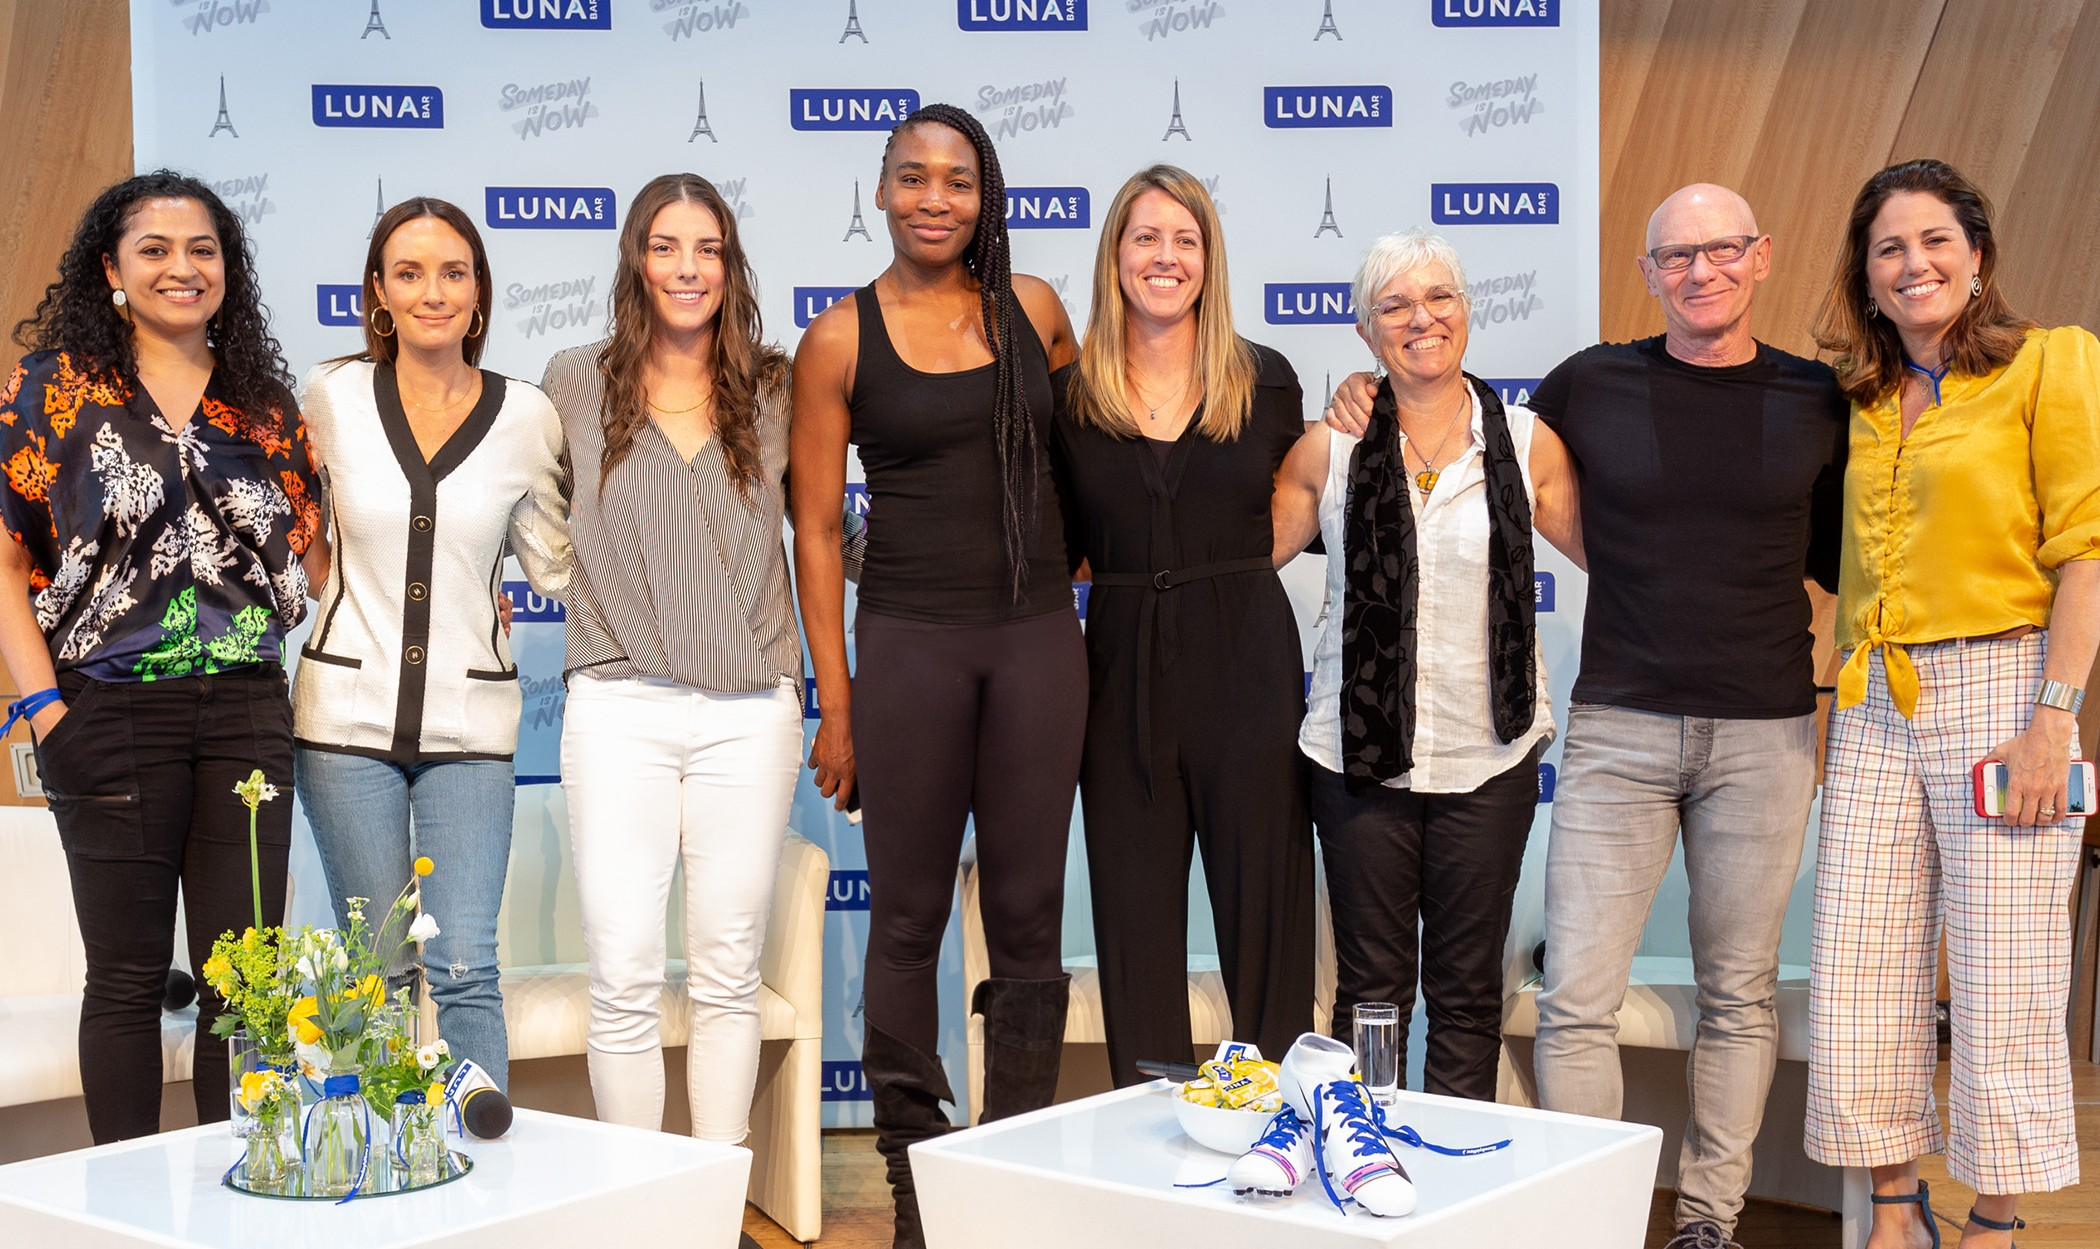 Why LUNA Bar Donated $718,000 to the U.S. Women's National Soccer Team: A Conversation with Ritu Mathur